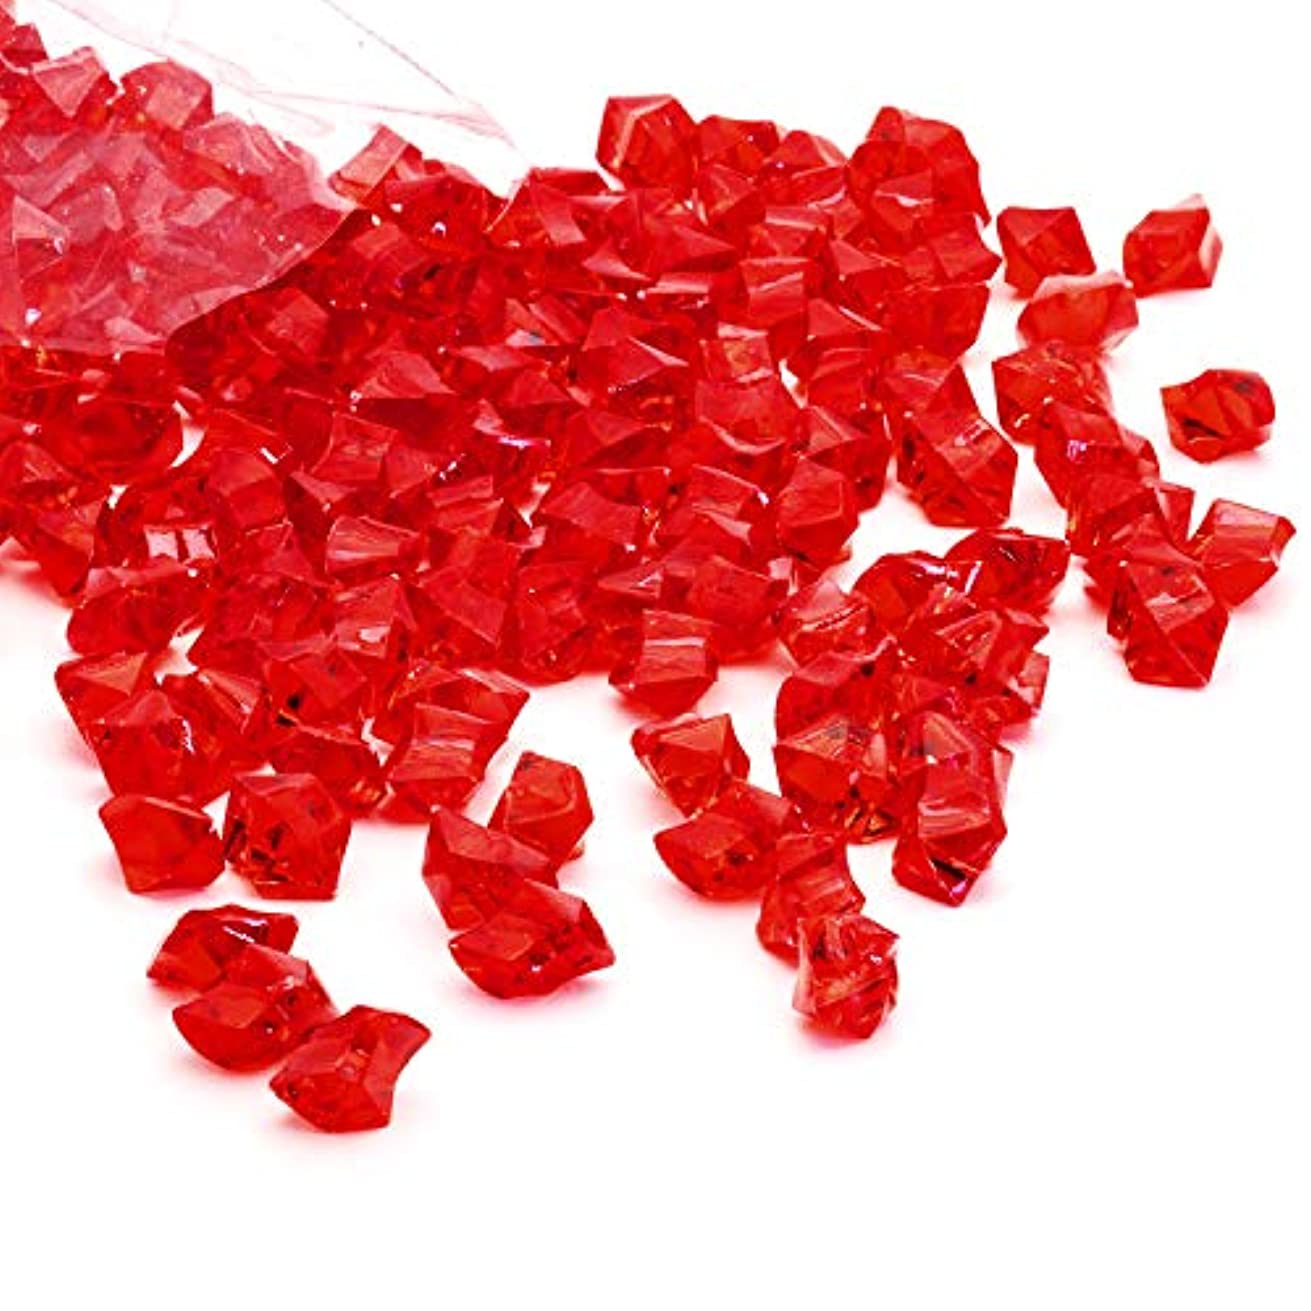 Acrylic Gems Ice Crystal Rocks for Vase Fillers, Party Table Scatter, Wedding, Photography, Party Decoration, Crafts by Royal Imports, 1 LB (Approx 180-200 gems) - Red